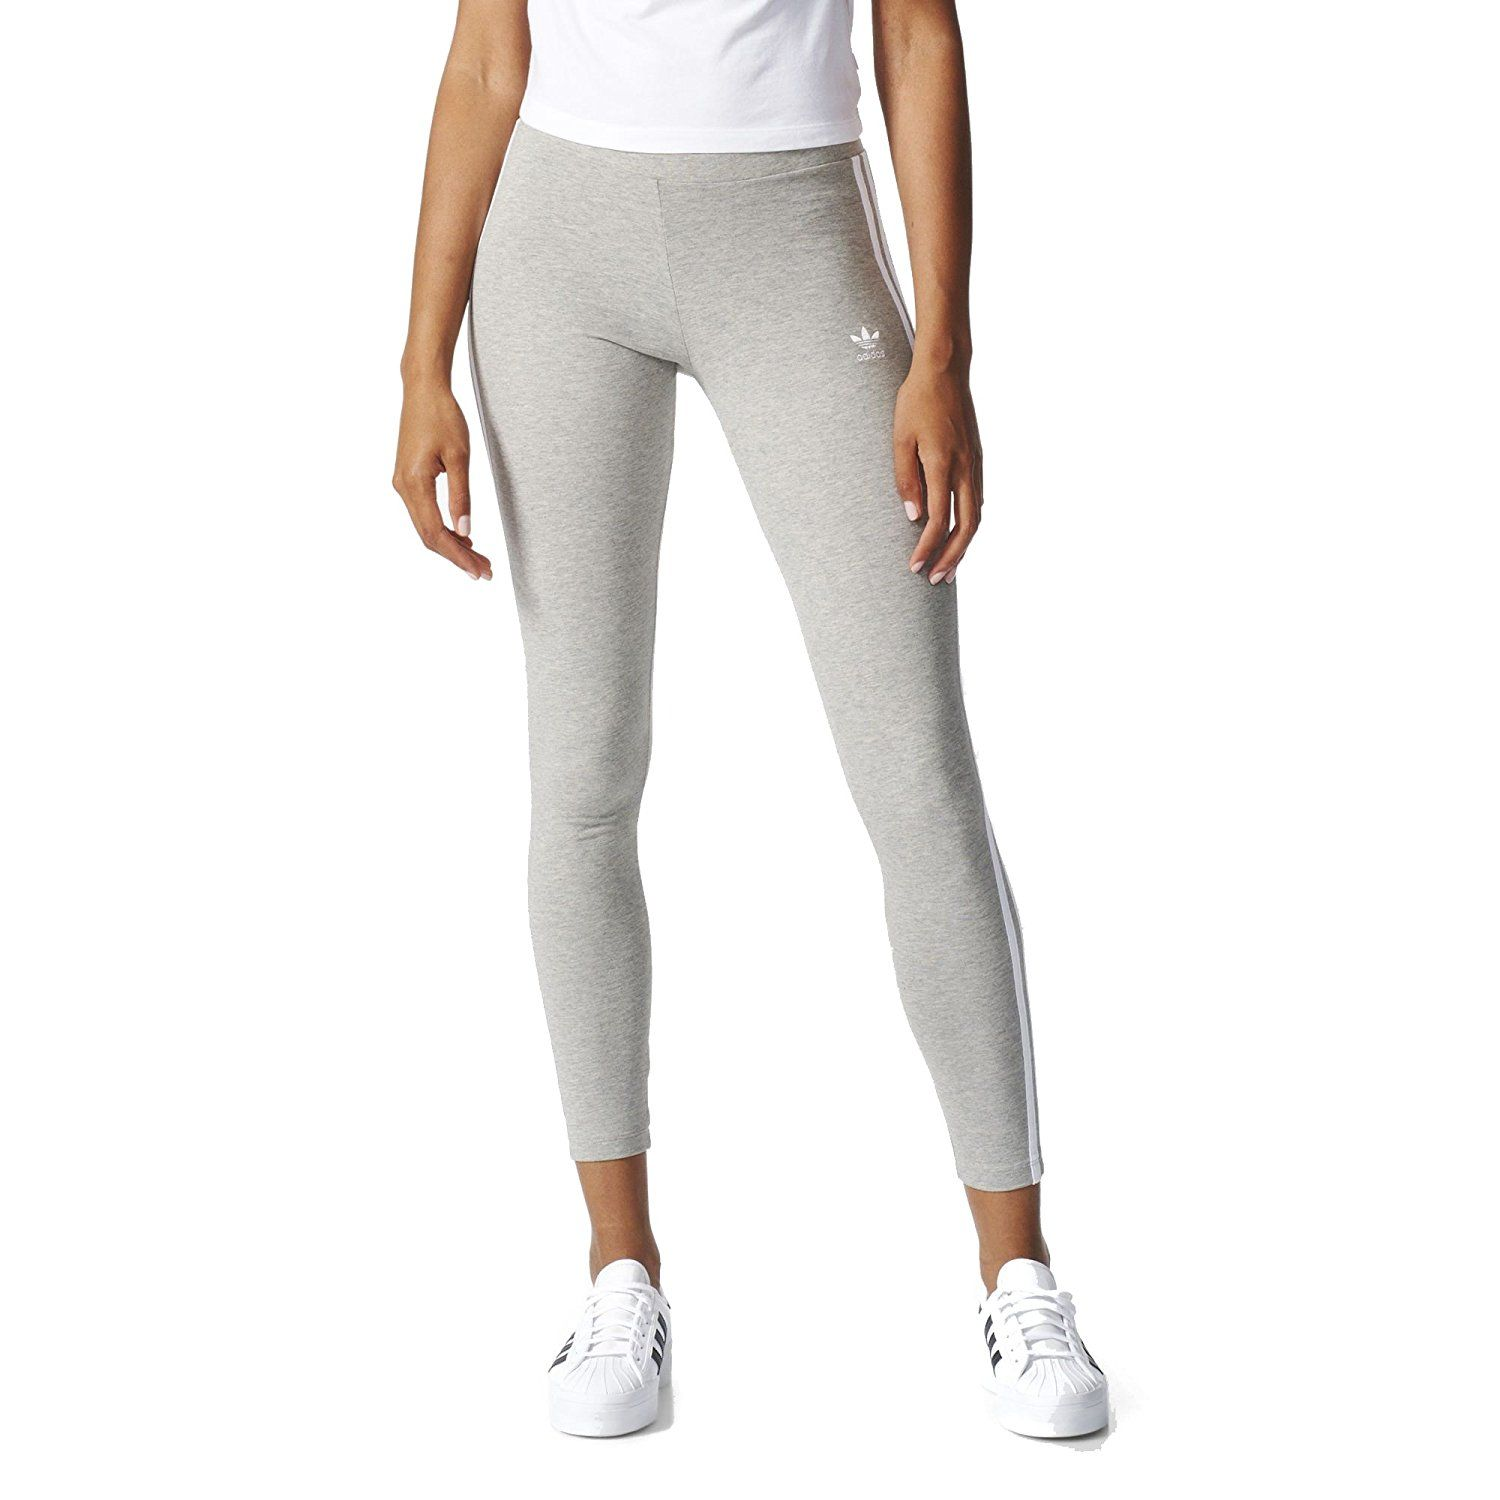 858b08506d66e adidas Originals Women's 3 Stripes Leggings at Amazon Women's Clothing store:  https://